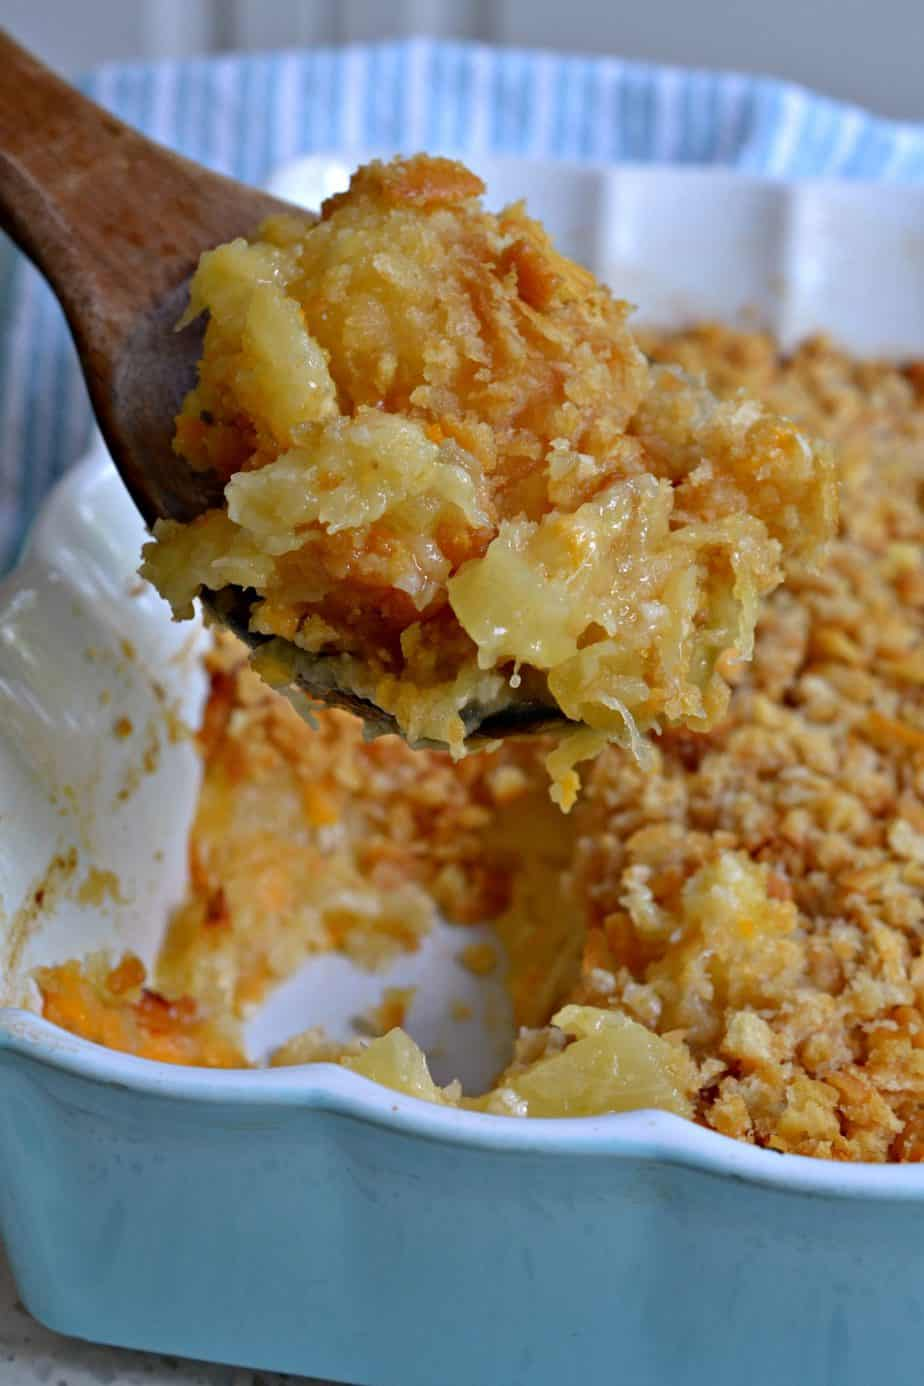 This popular southern Pineapple Casserole is made with sweet pineapple, tasty cheddar cheese and buttery cracker crumbs.